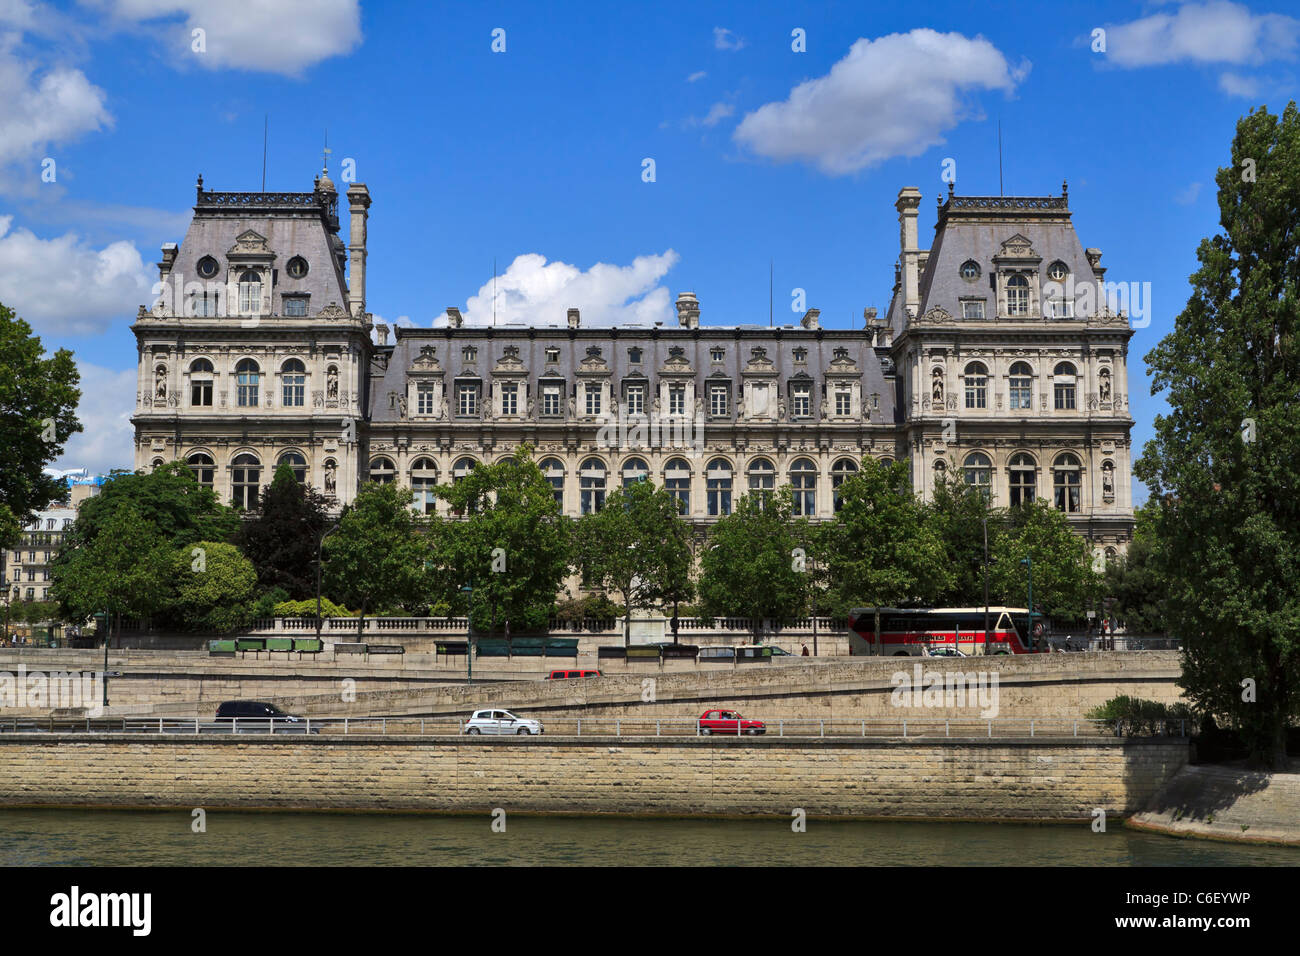 Hotel de Ville, Paris, from the River Seine. French Renaissance style building houses the administration of the - Stock Image